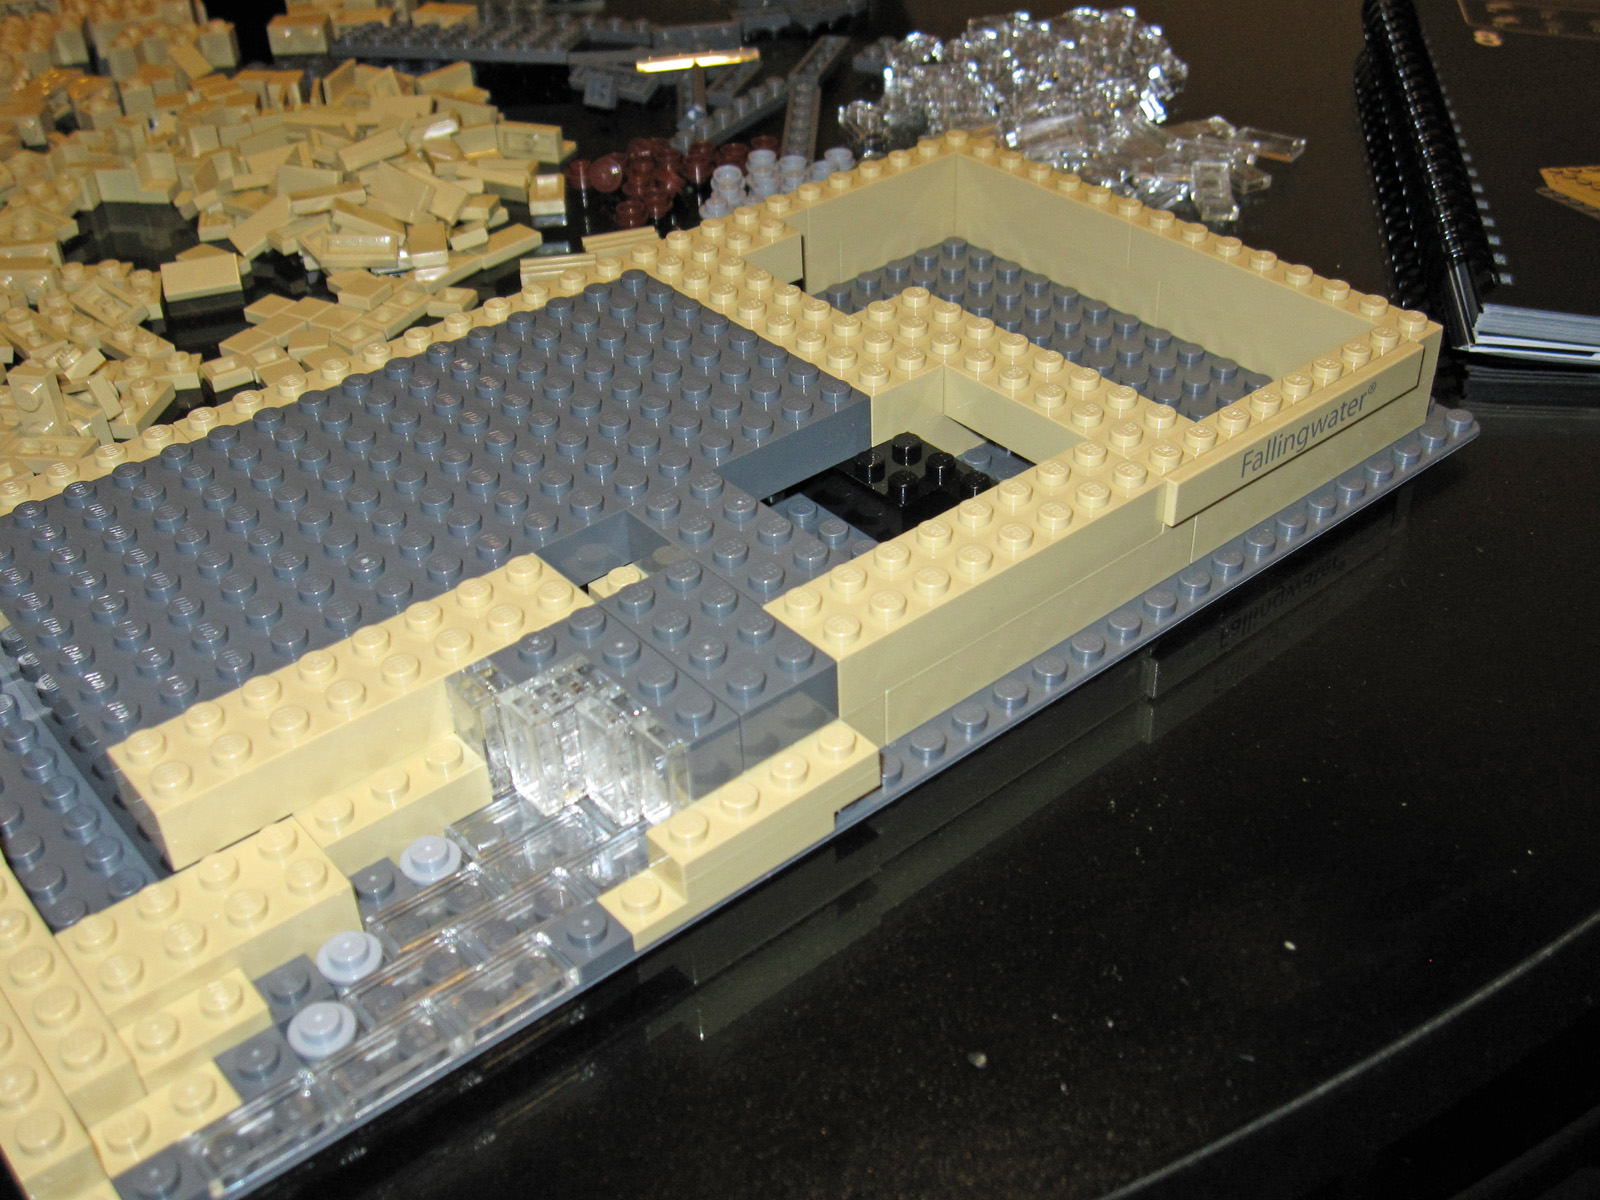 File lego architecture 21005 fallingwater 7331201022 jpg wikimedia commons - Falling waters lego ...